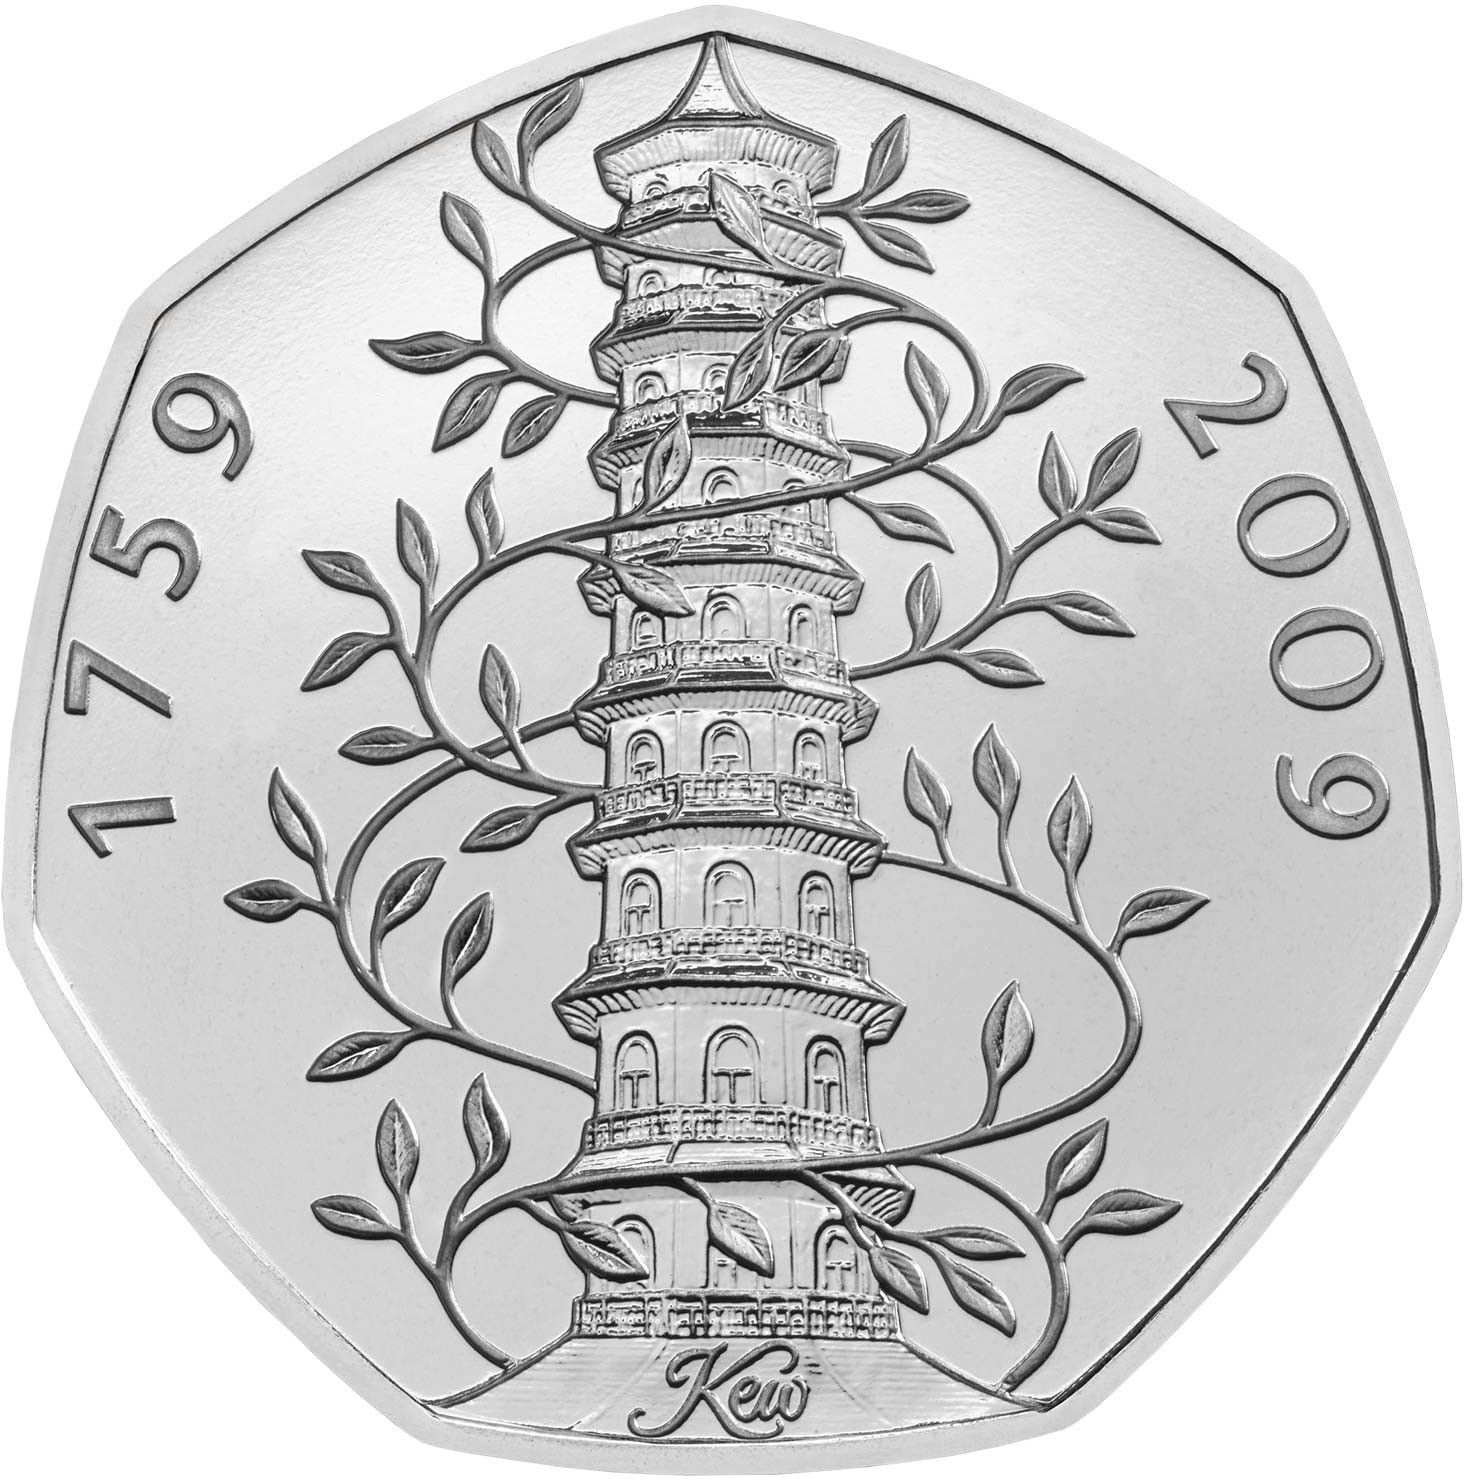 Fifty Pence 2009 Kew Gardens: Photo Kew Gardens 50p Brilliant Uncirculated Coin